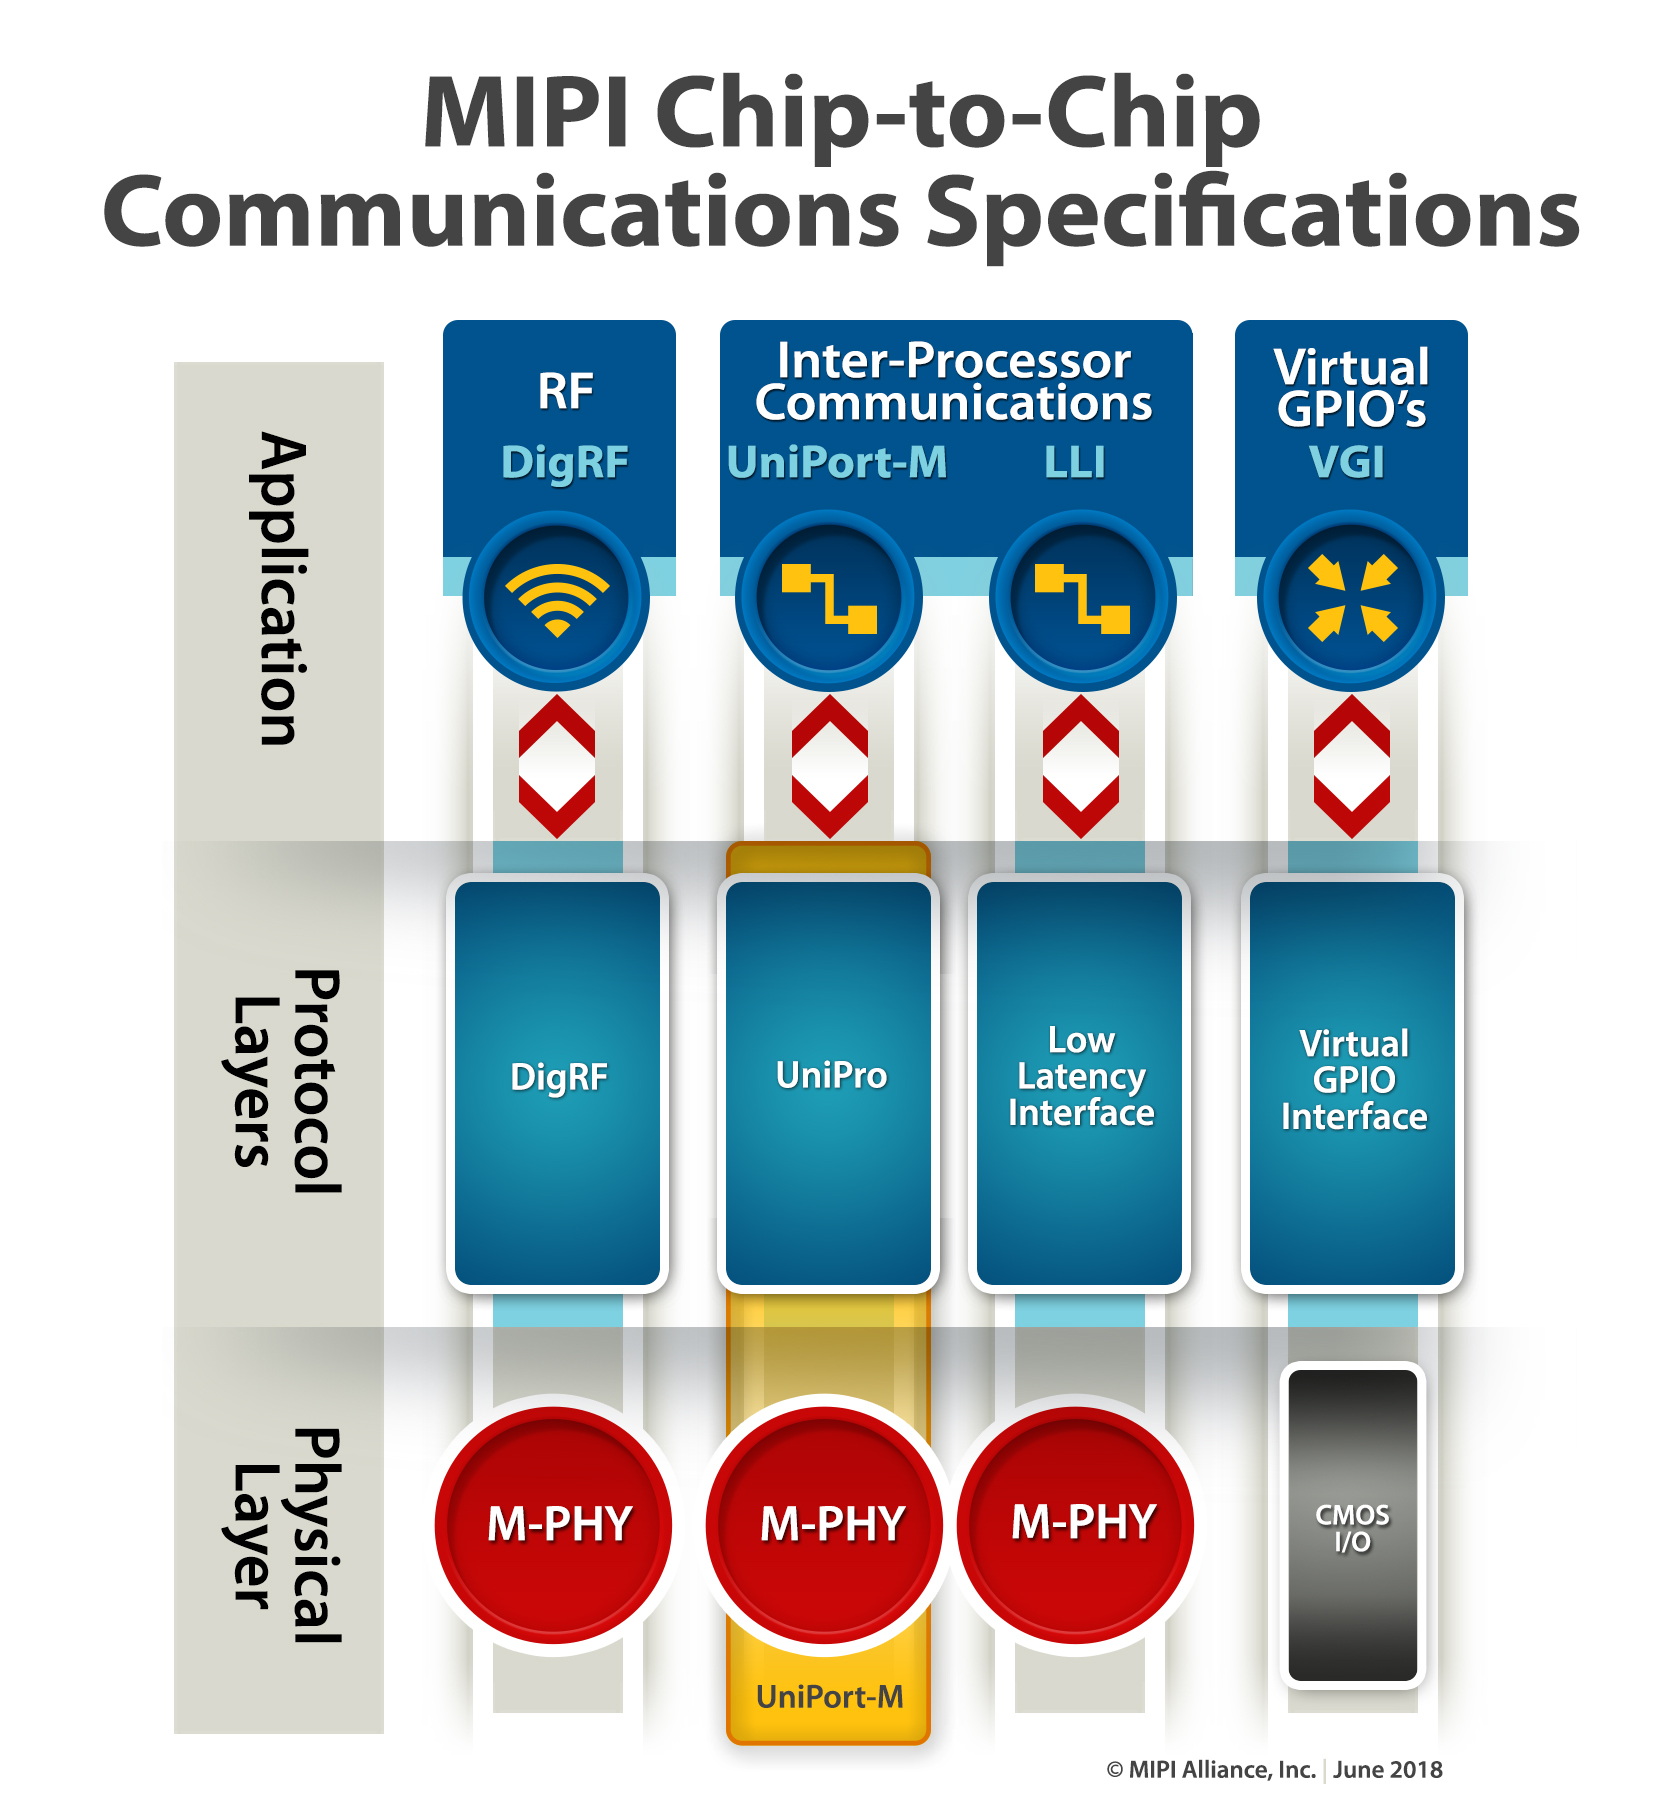 MIPI Chip-to-Chip Communications Specifications Diagram